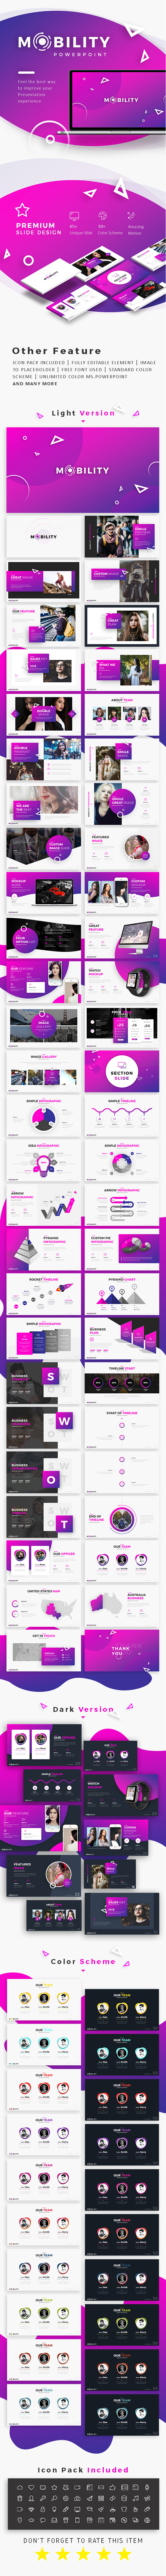 Mobility - Creative Presentation Template - Business PowerPoint Templates